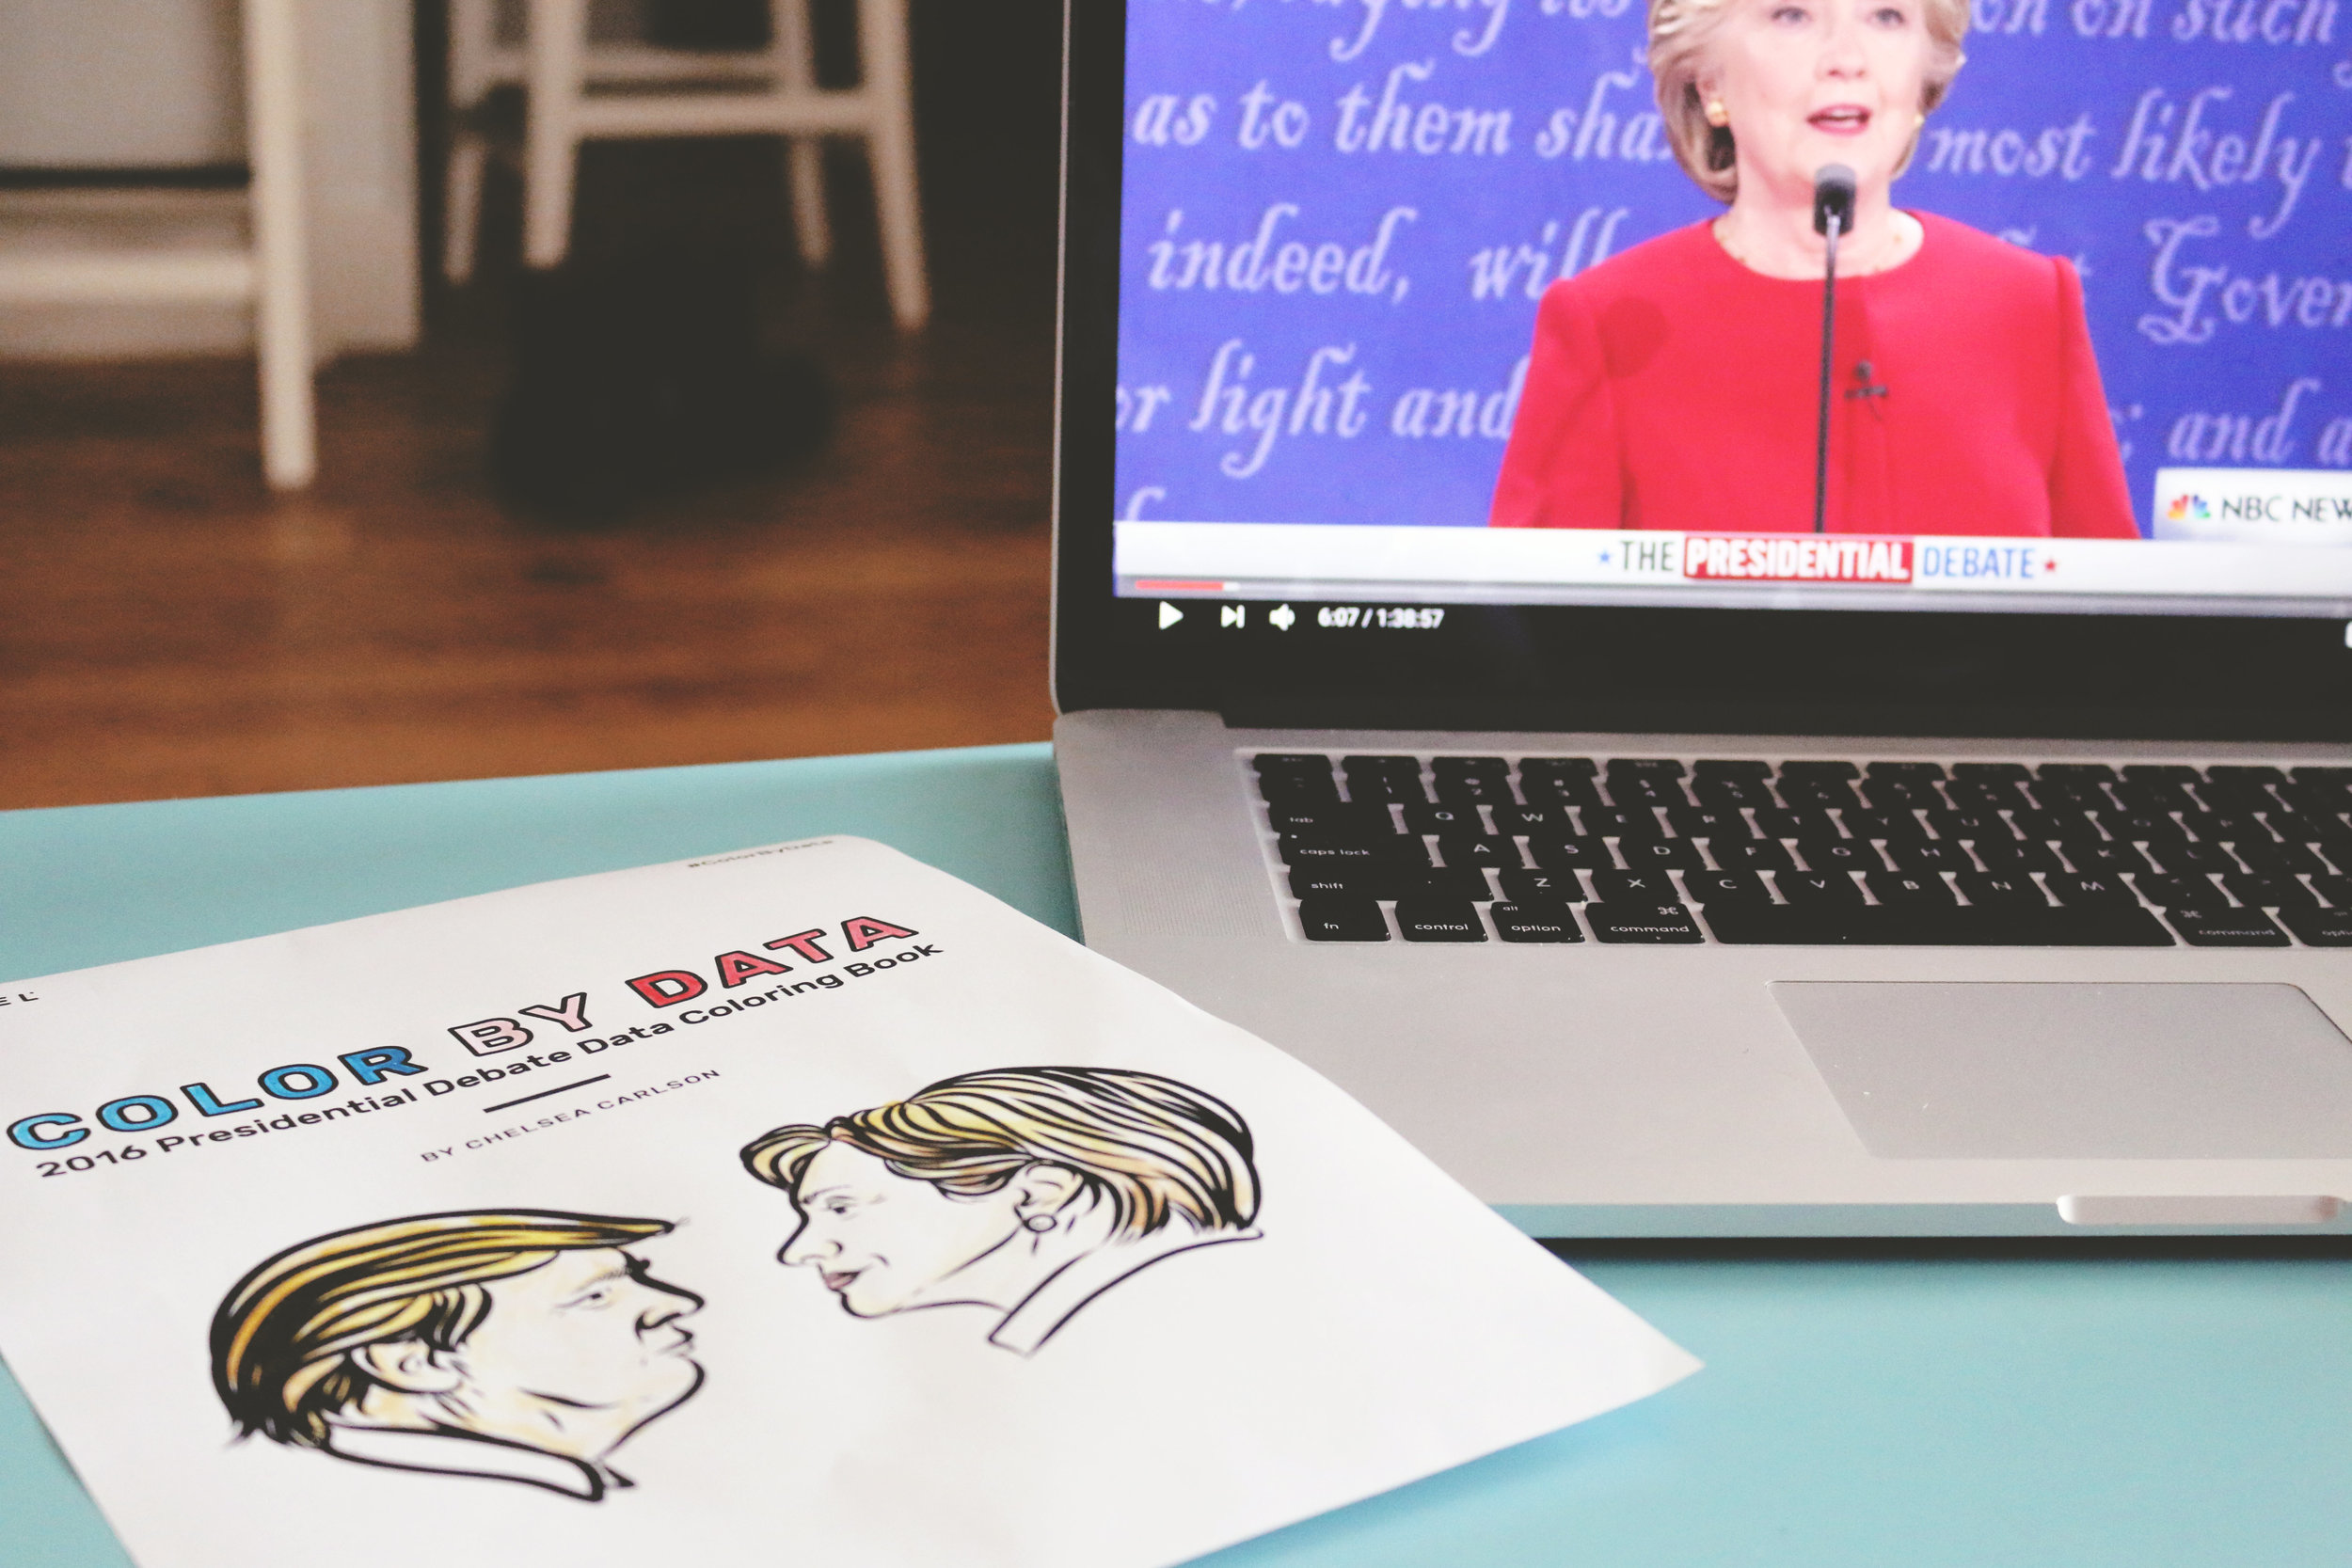 Color By Data  - I designed this (low tech) interactive data coloring book as a companion to the televised presidential debates. Three different types of DIY graphs allowed people of all political inclinations to create a tangible representation of their feelings about the candidates throughout the debate.